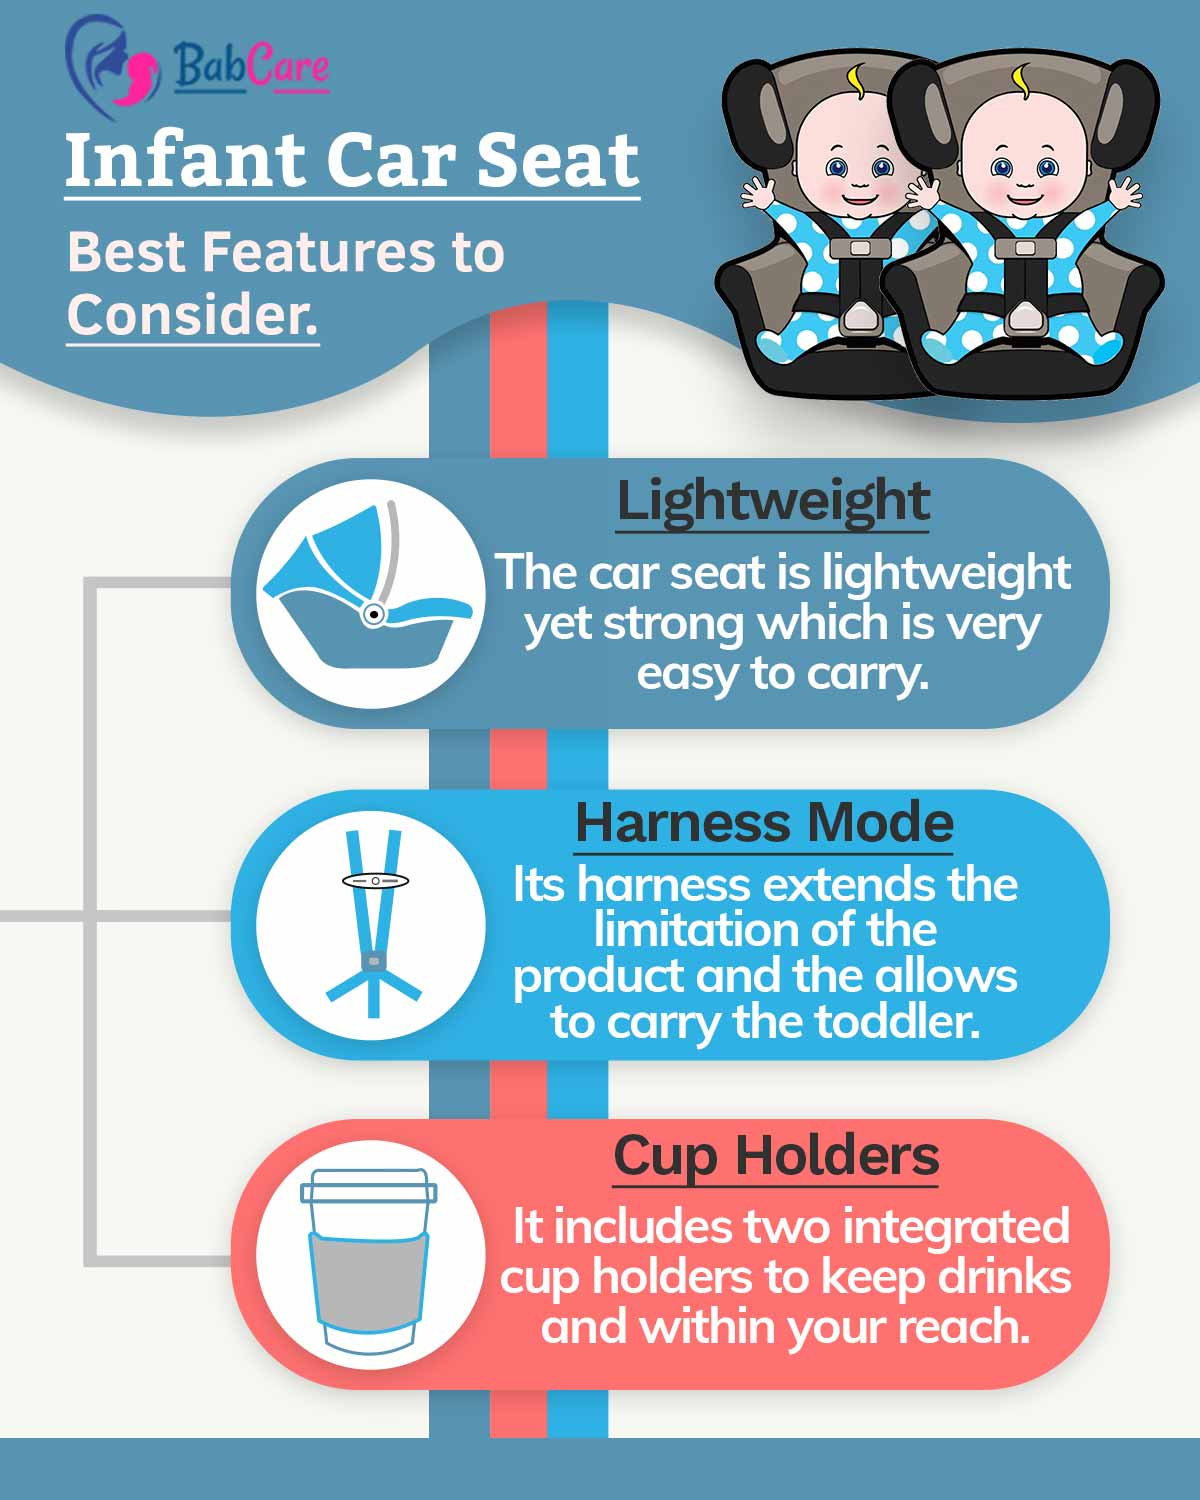 britax has good features infographic about lightweight, harness mode and cup holders